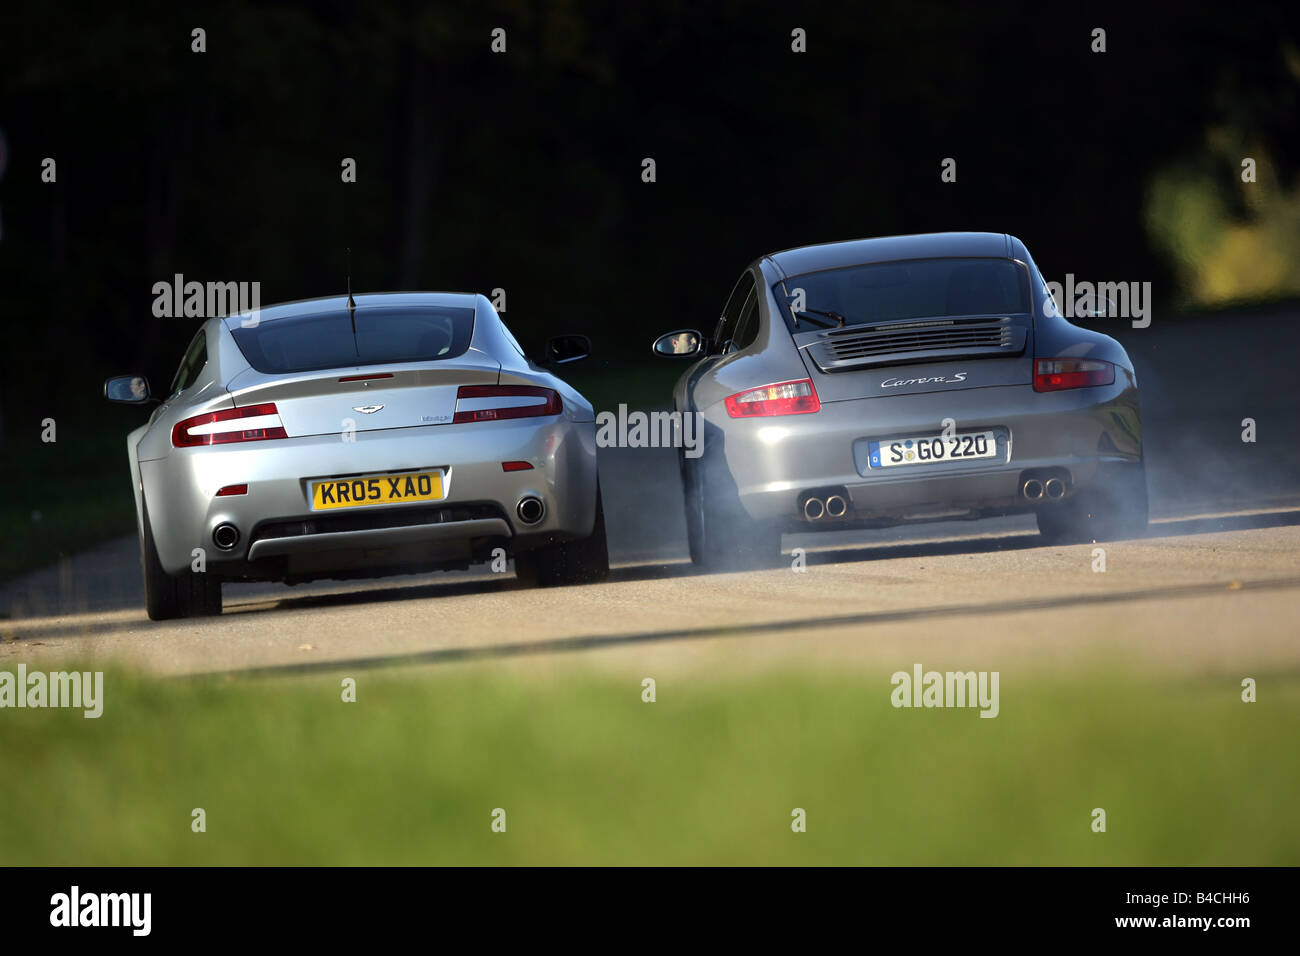 Sports Approx S Group Picture Porsche 911 Carrera S Model Year Stock Photo Alamy